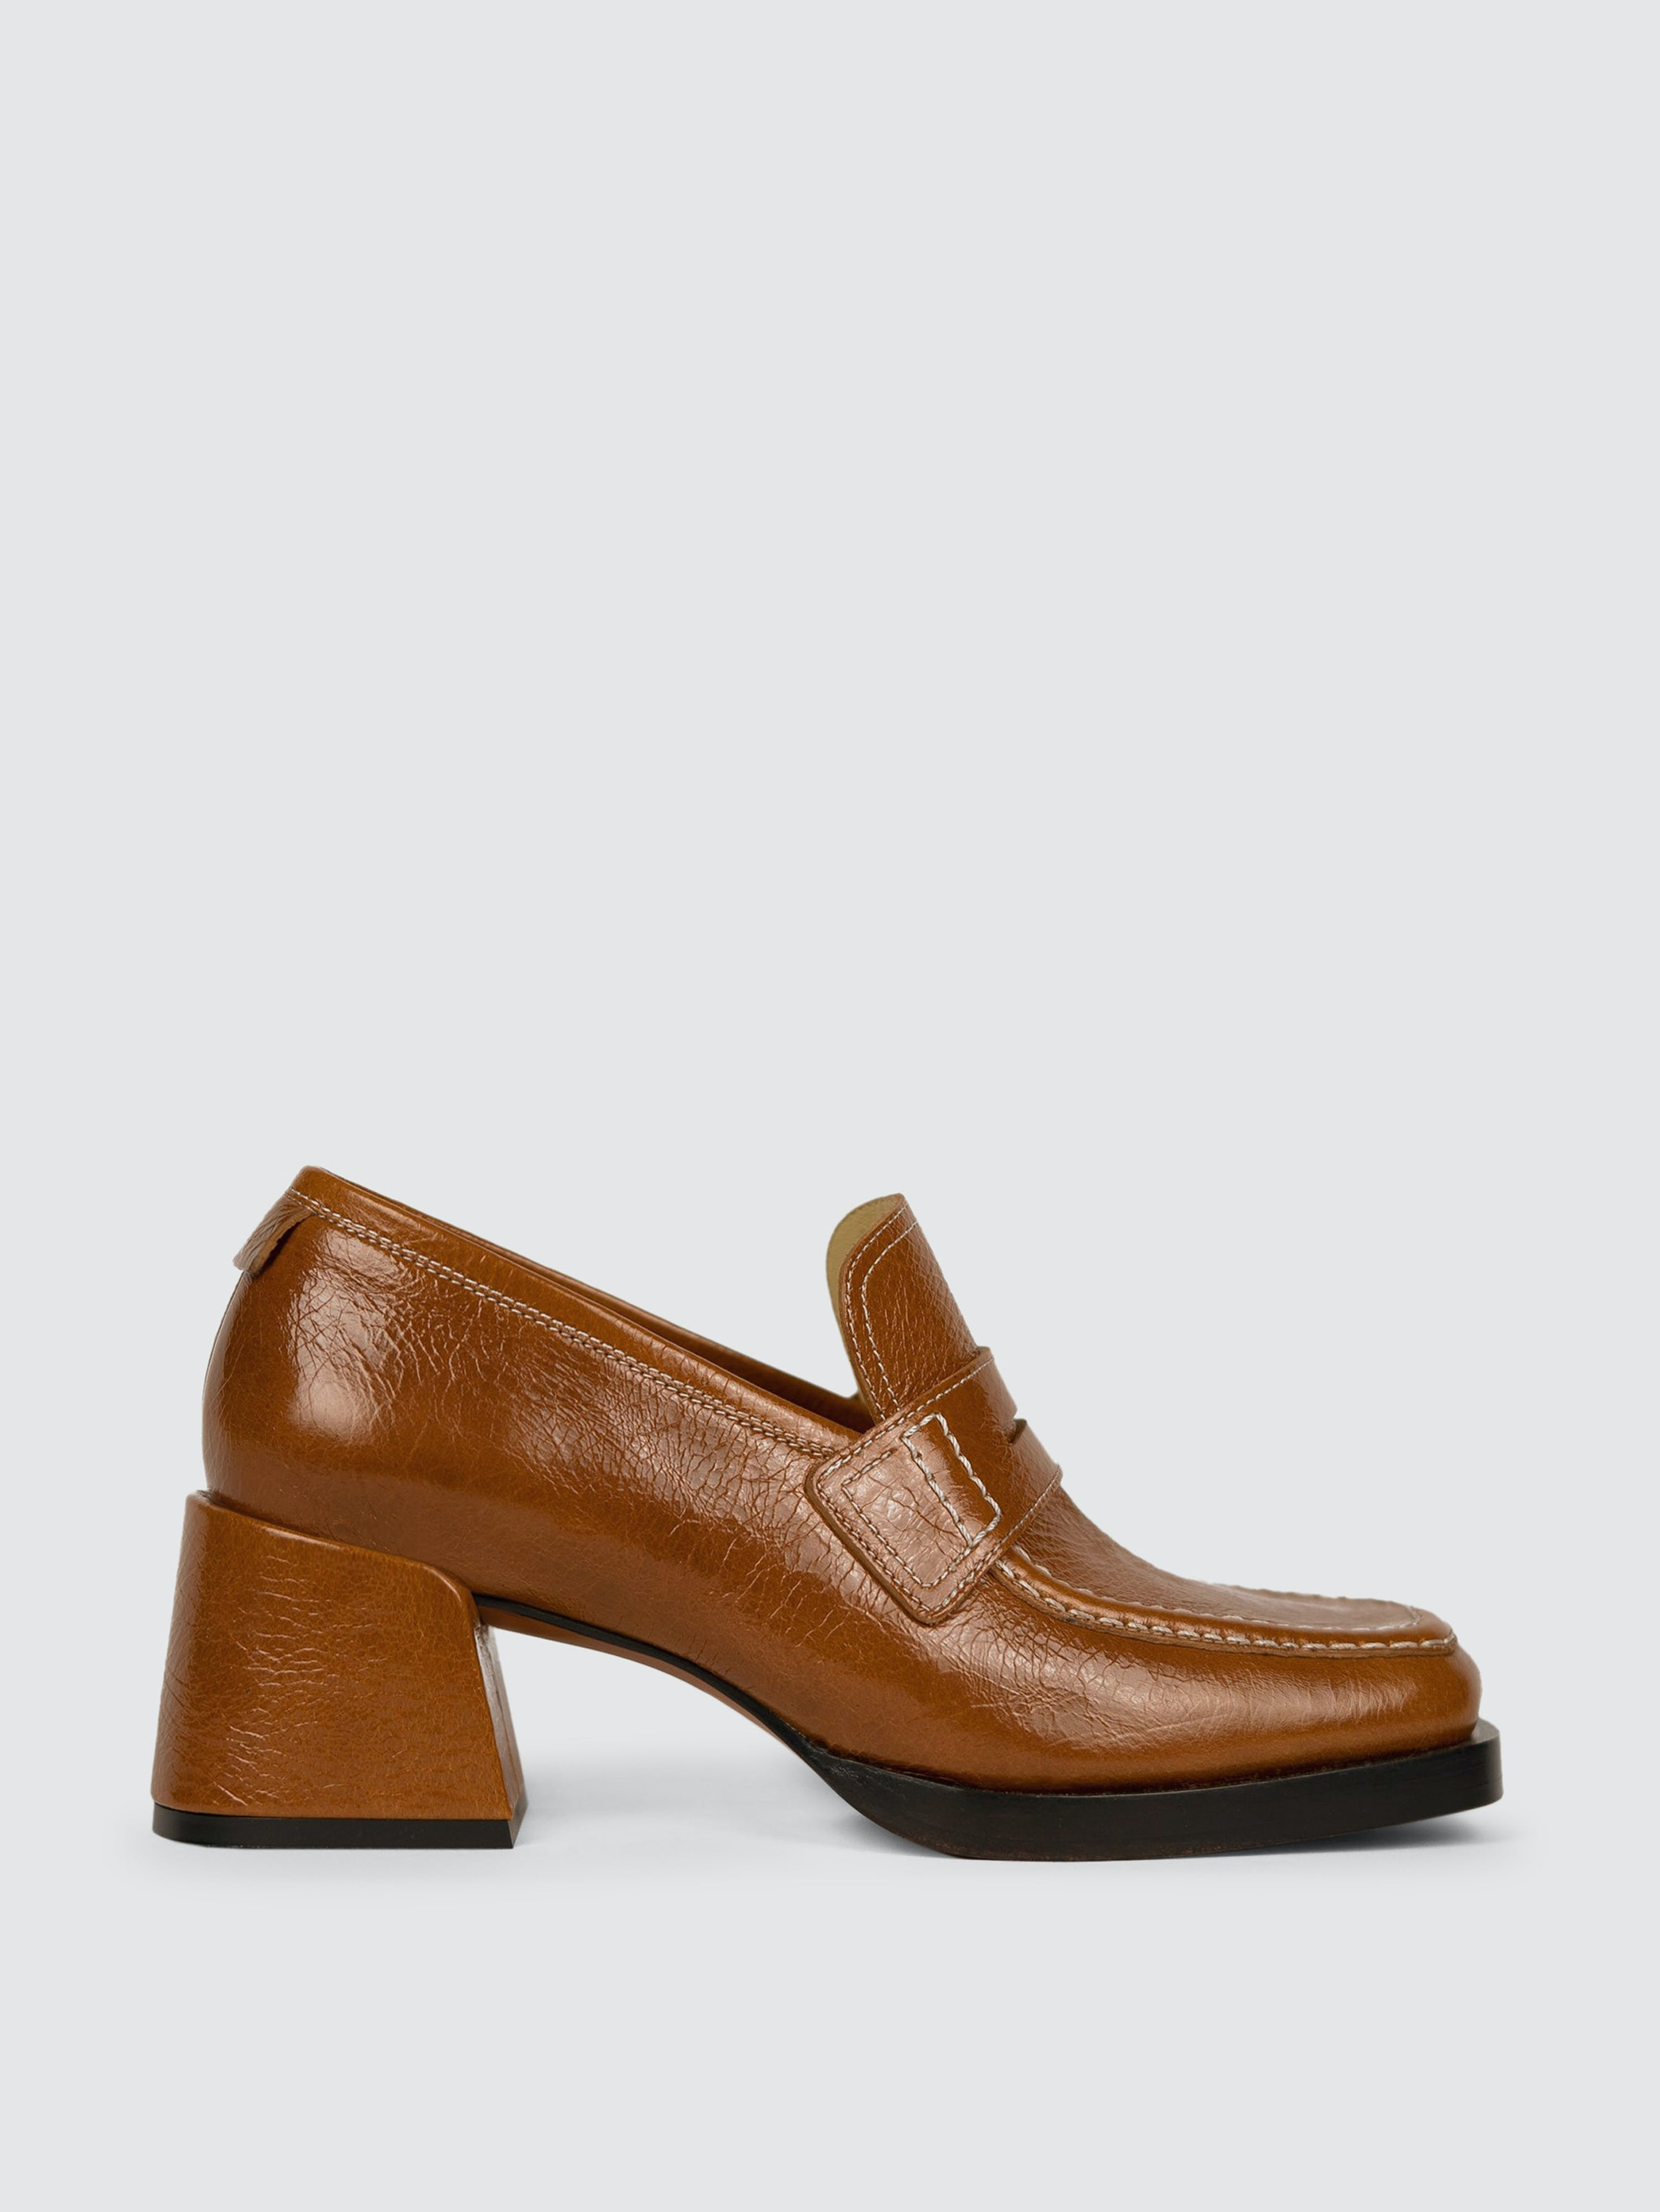 Labucq Kitty Loafer Cognac Patent In Brown